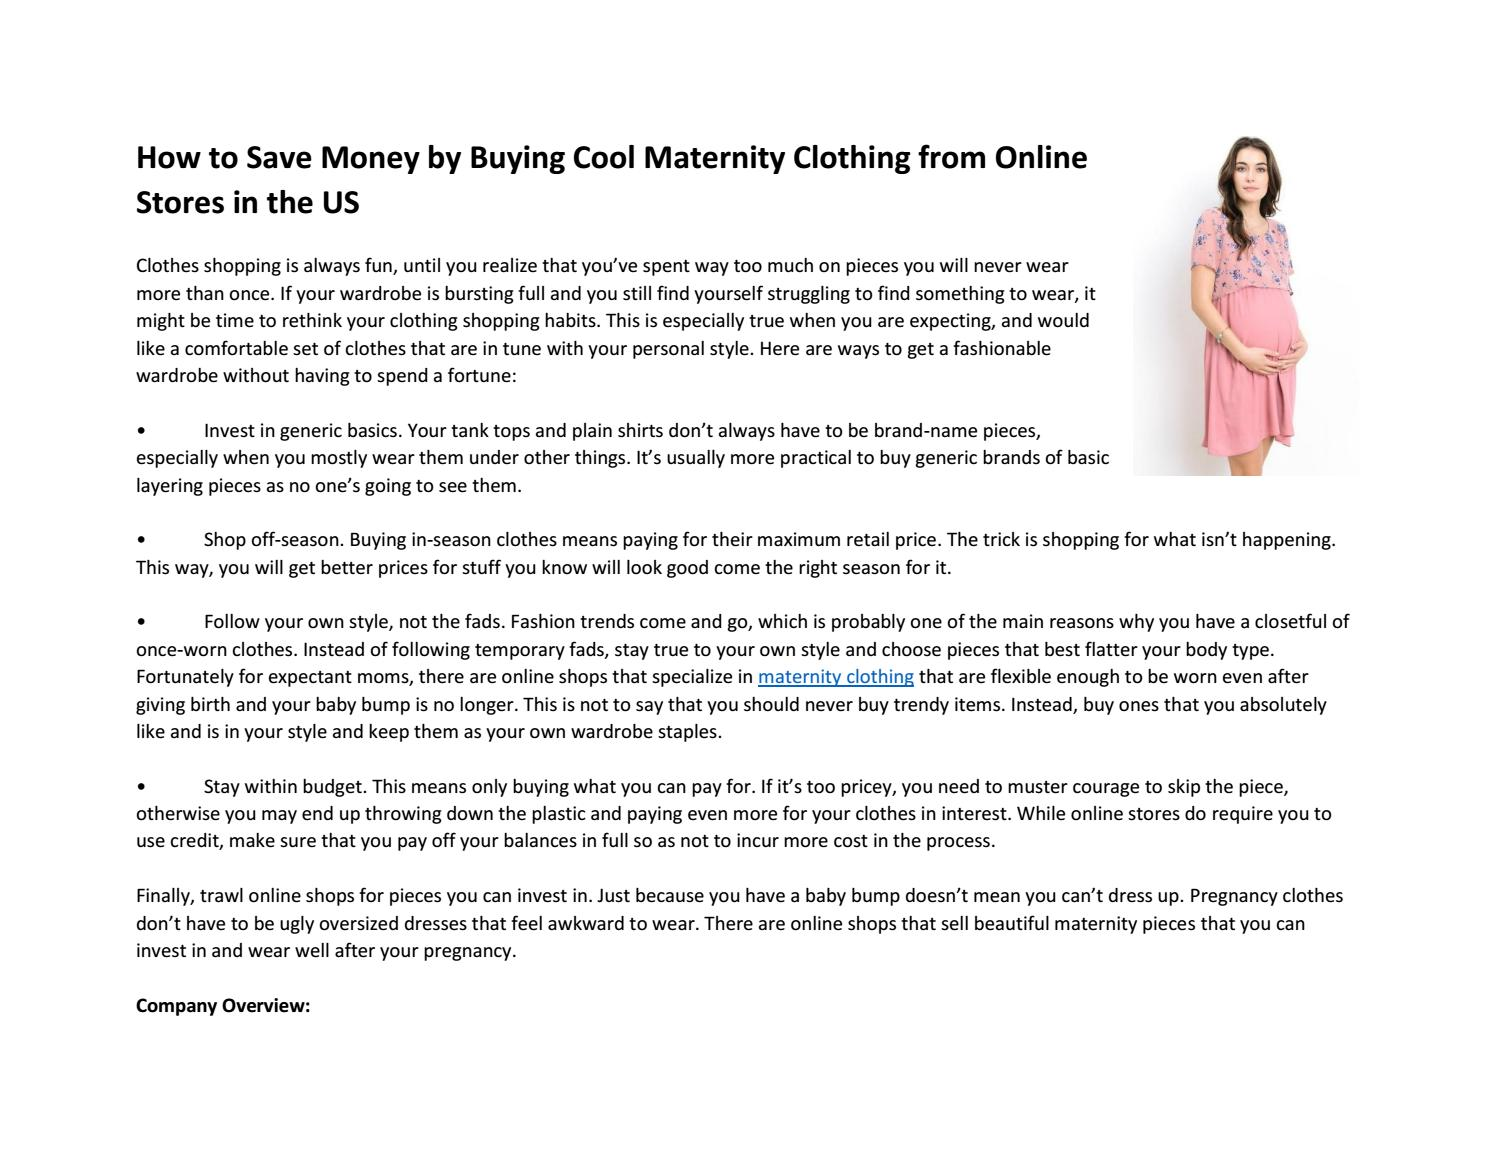 How To Save Money By Buying Cool Maternity Clothing From Online Stores In The Us By Hello Miz Issuu